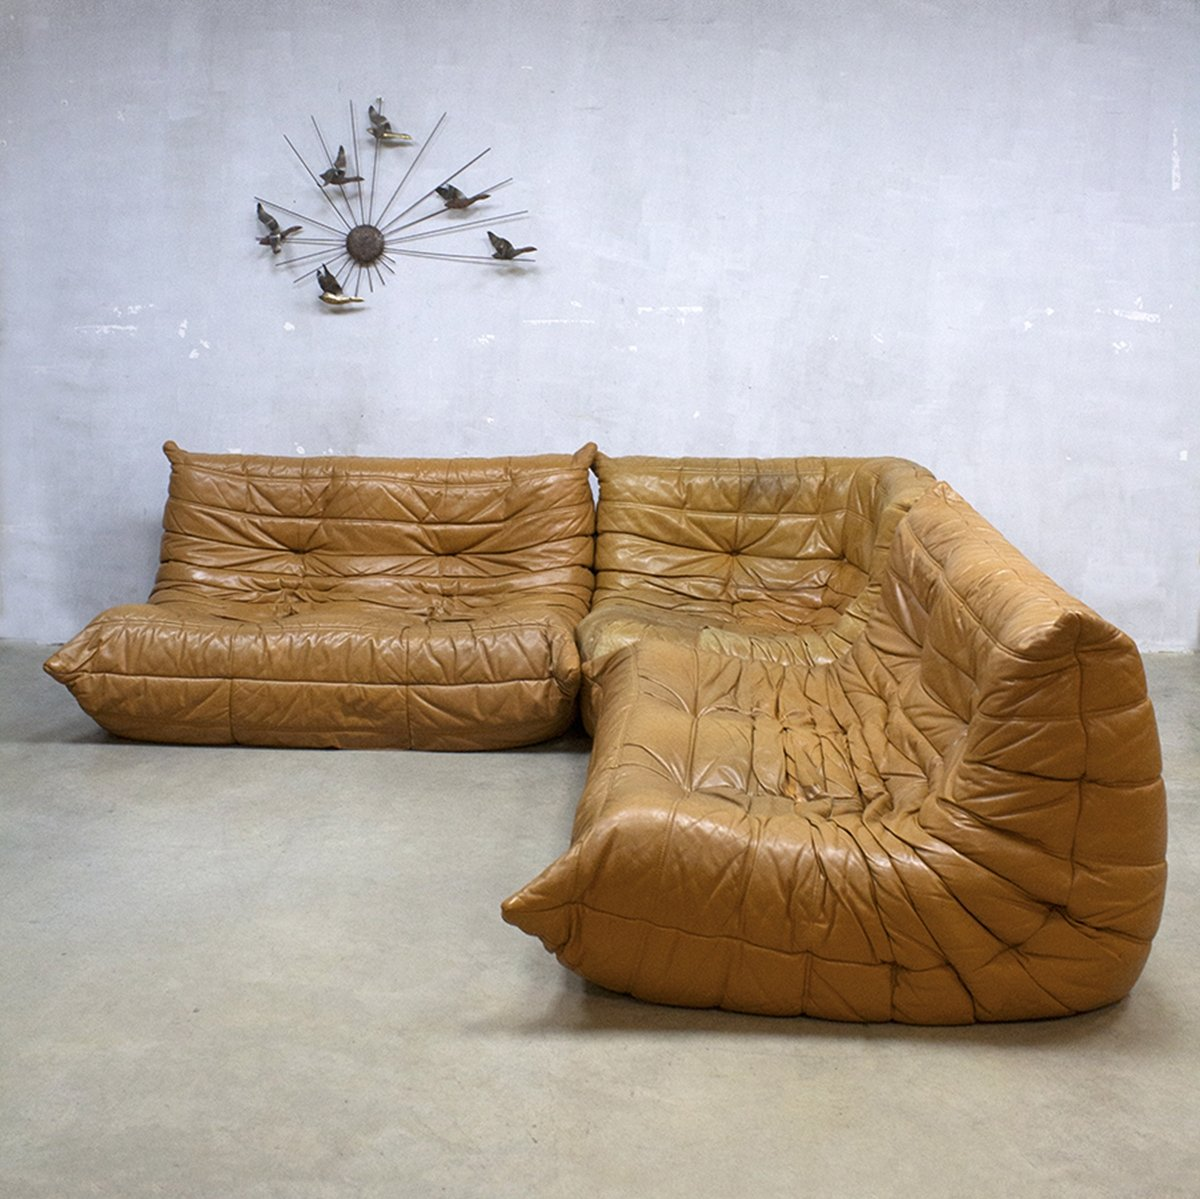 Attractive Togo Sofa By Michel Ducaroy For Ligne Roset, 1970s